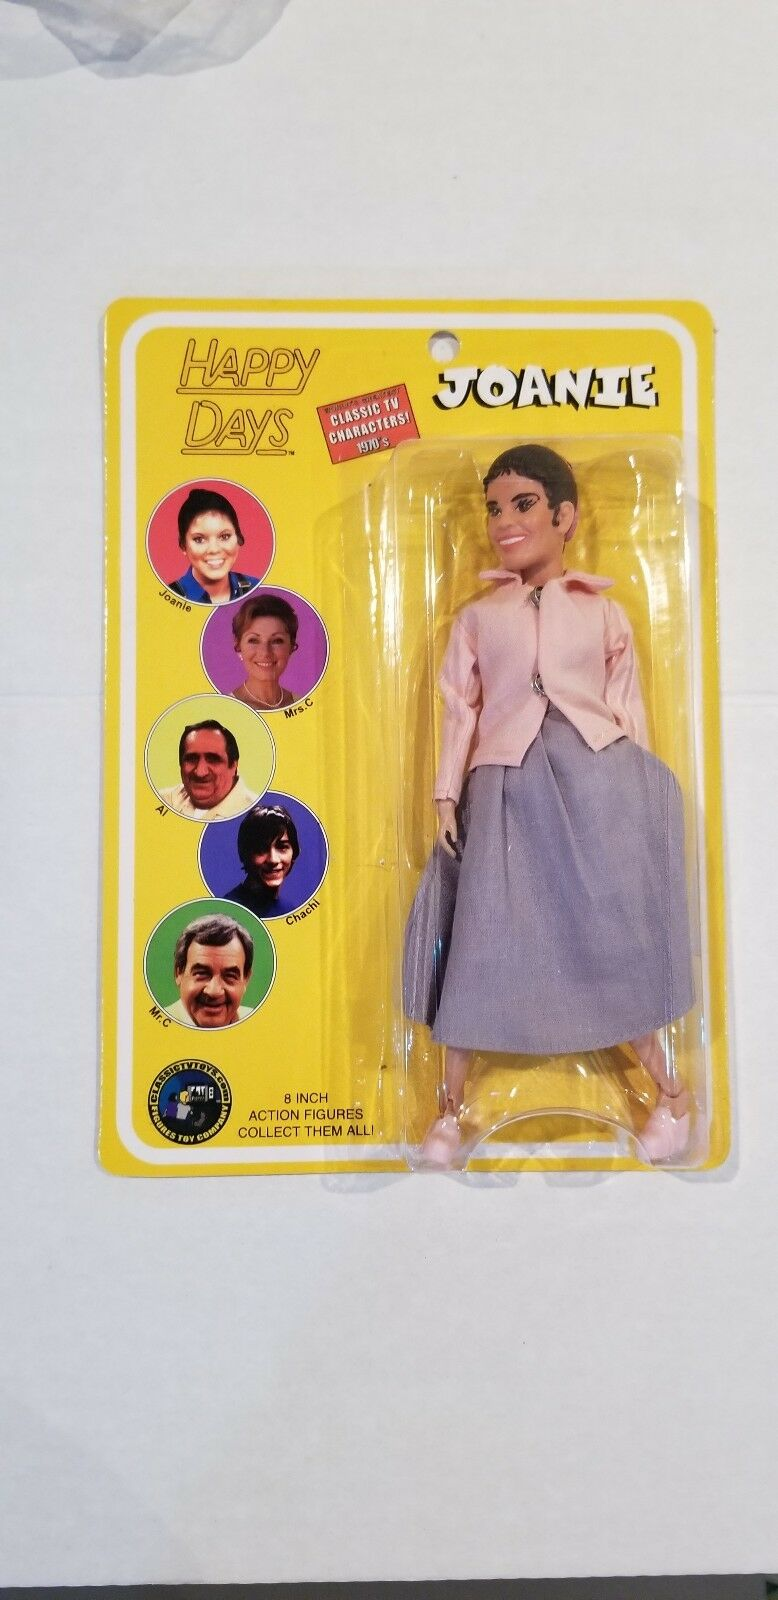 Happy Days Series 2 - 8 inch Action Figure - JOANIE